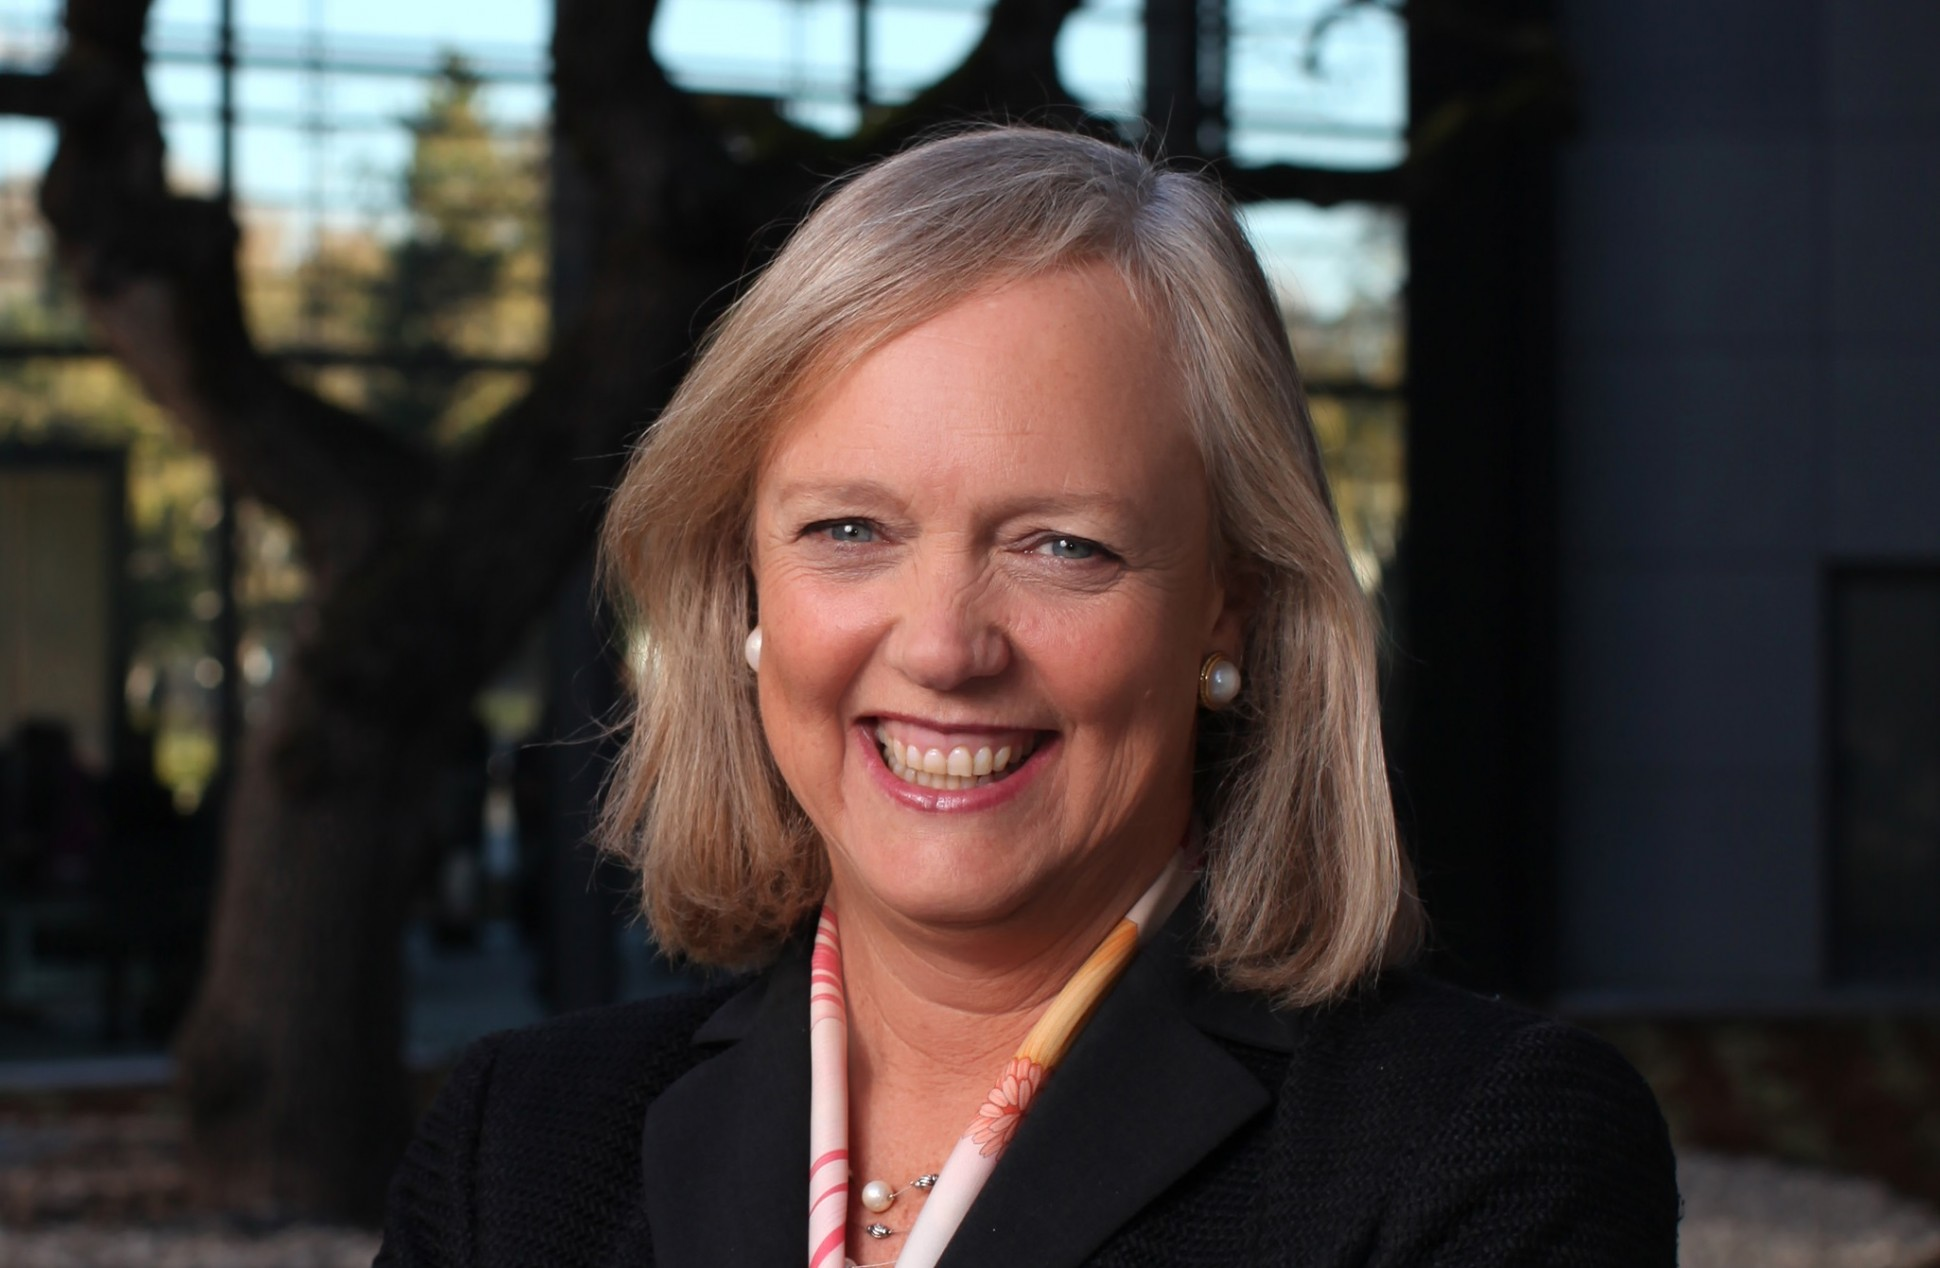 Meg-Whitman-photo-v2-1940x1268.jpg